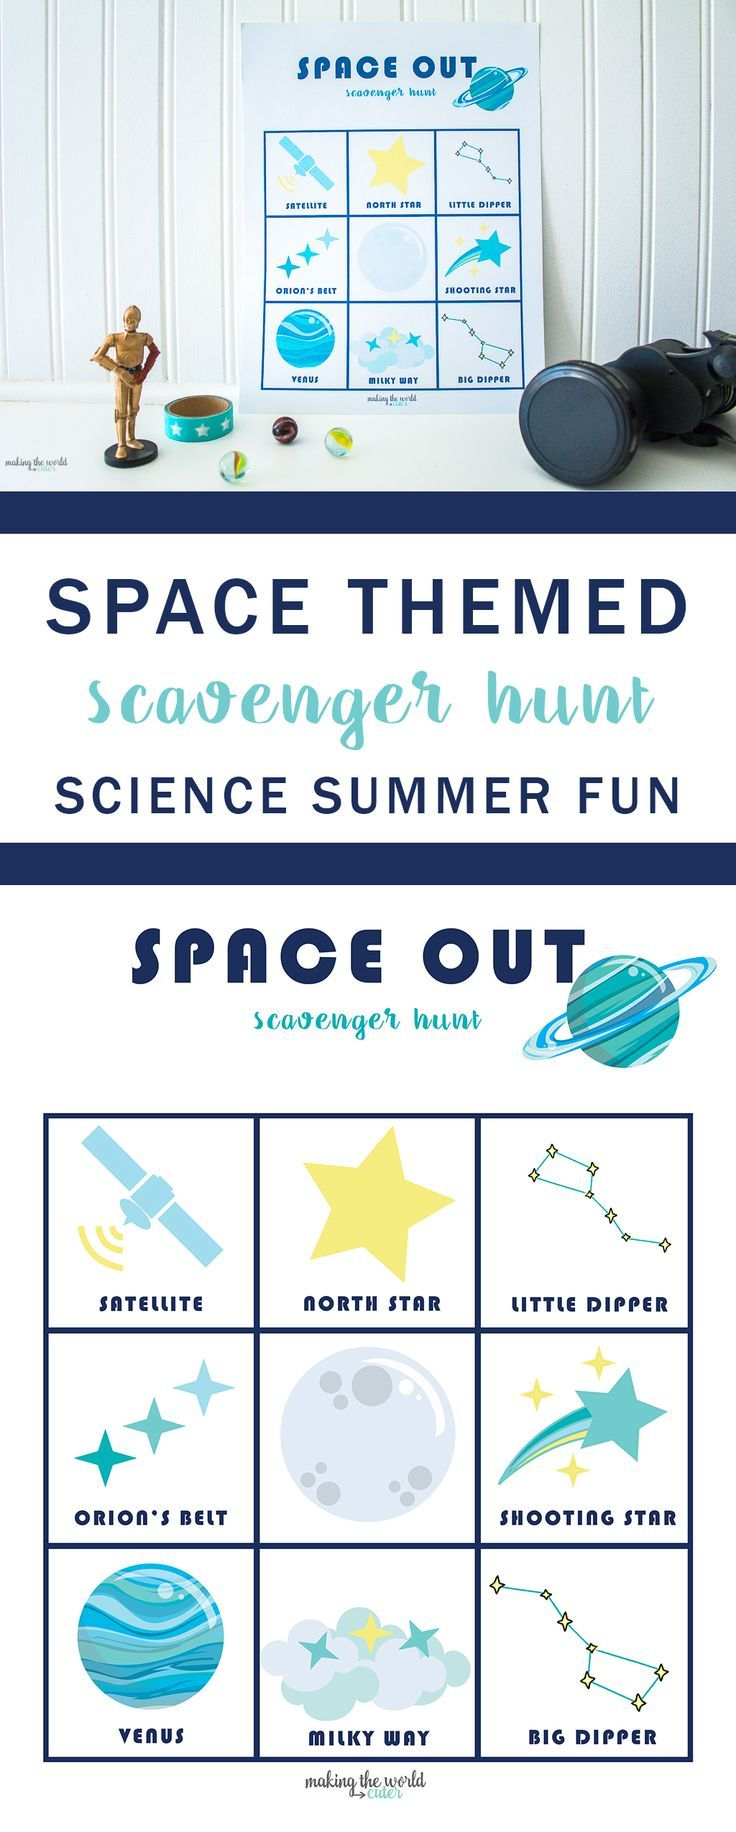 Best Diy Crafts Ideas For Your Home Space Themed Scavenger Hunt ...